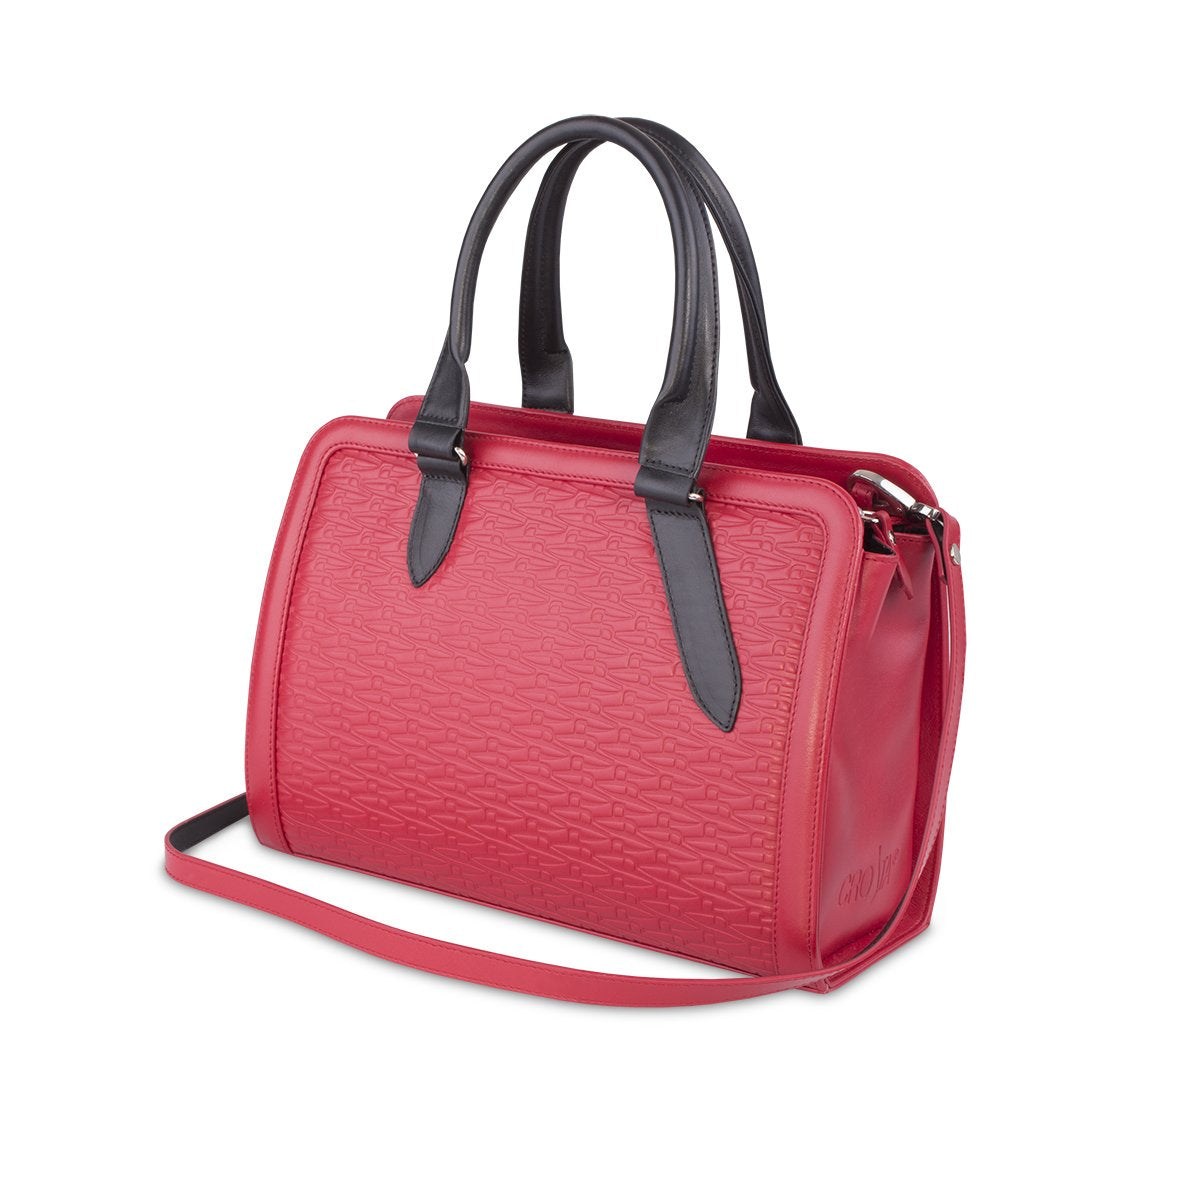 Croata Women's Middle Bag Red